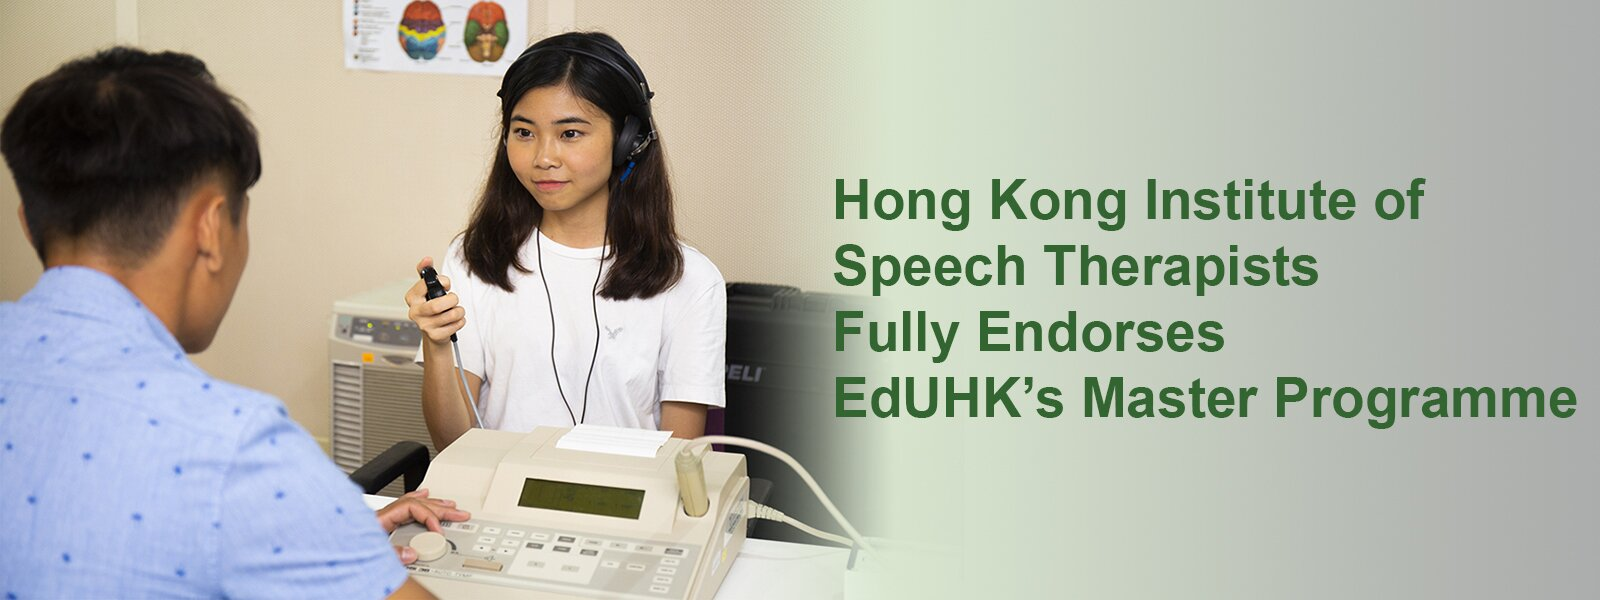 Hong Kong Institute of Speech Therapists Fully Endorses EdUHK's Master Programme